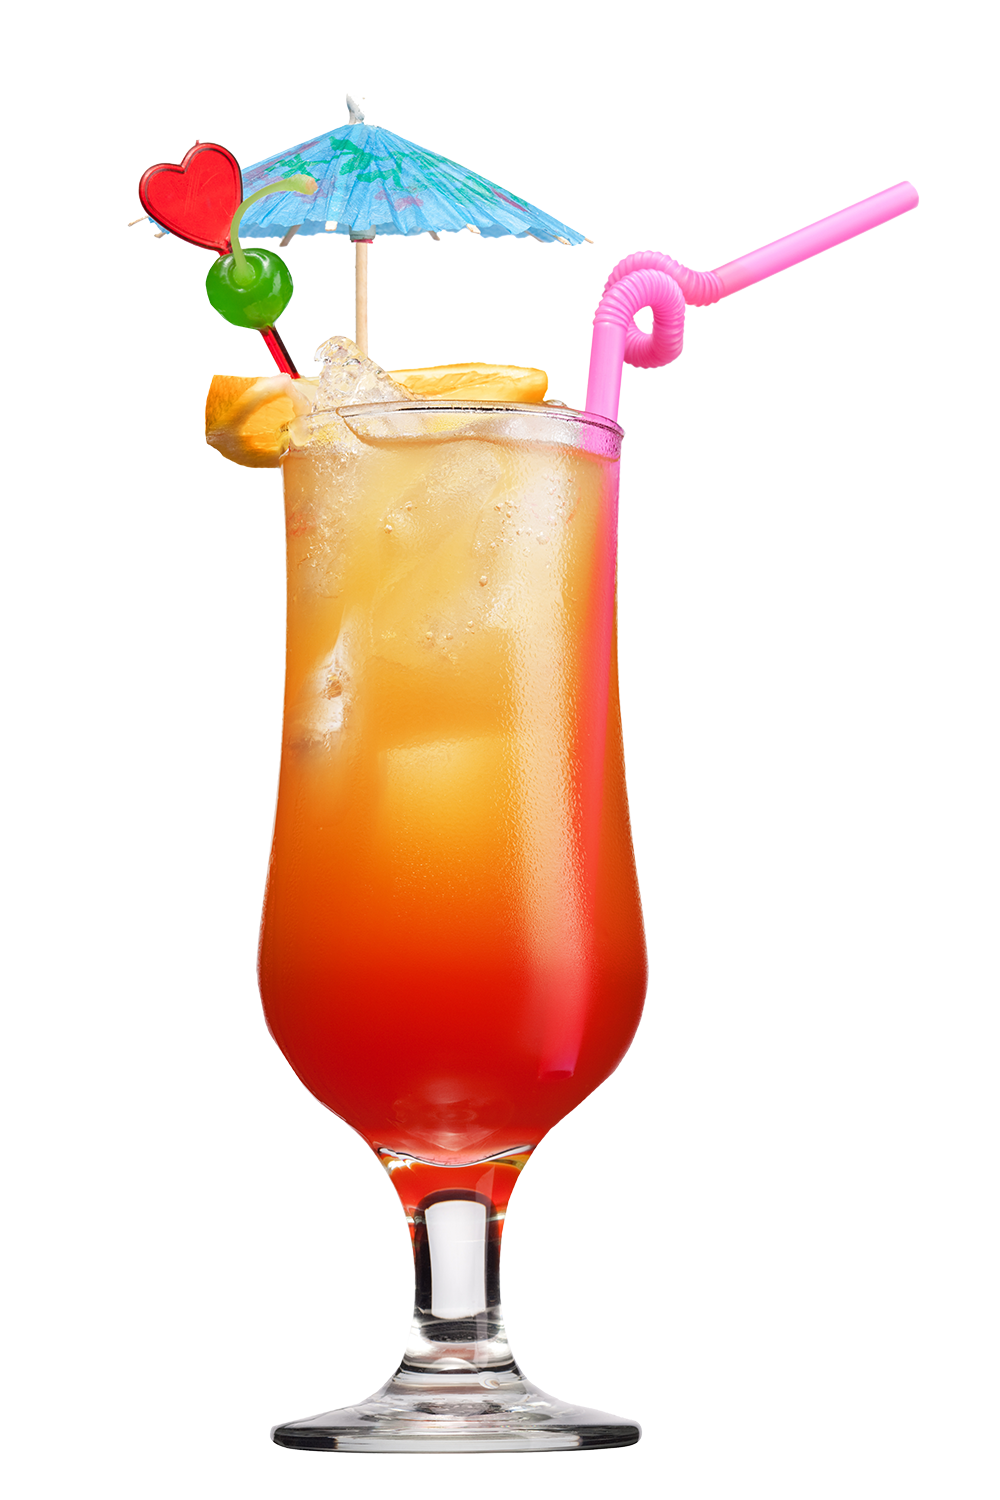 Cocktail png image purepng. Cocktails clipart tequila